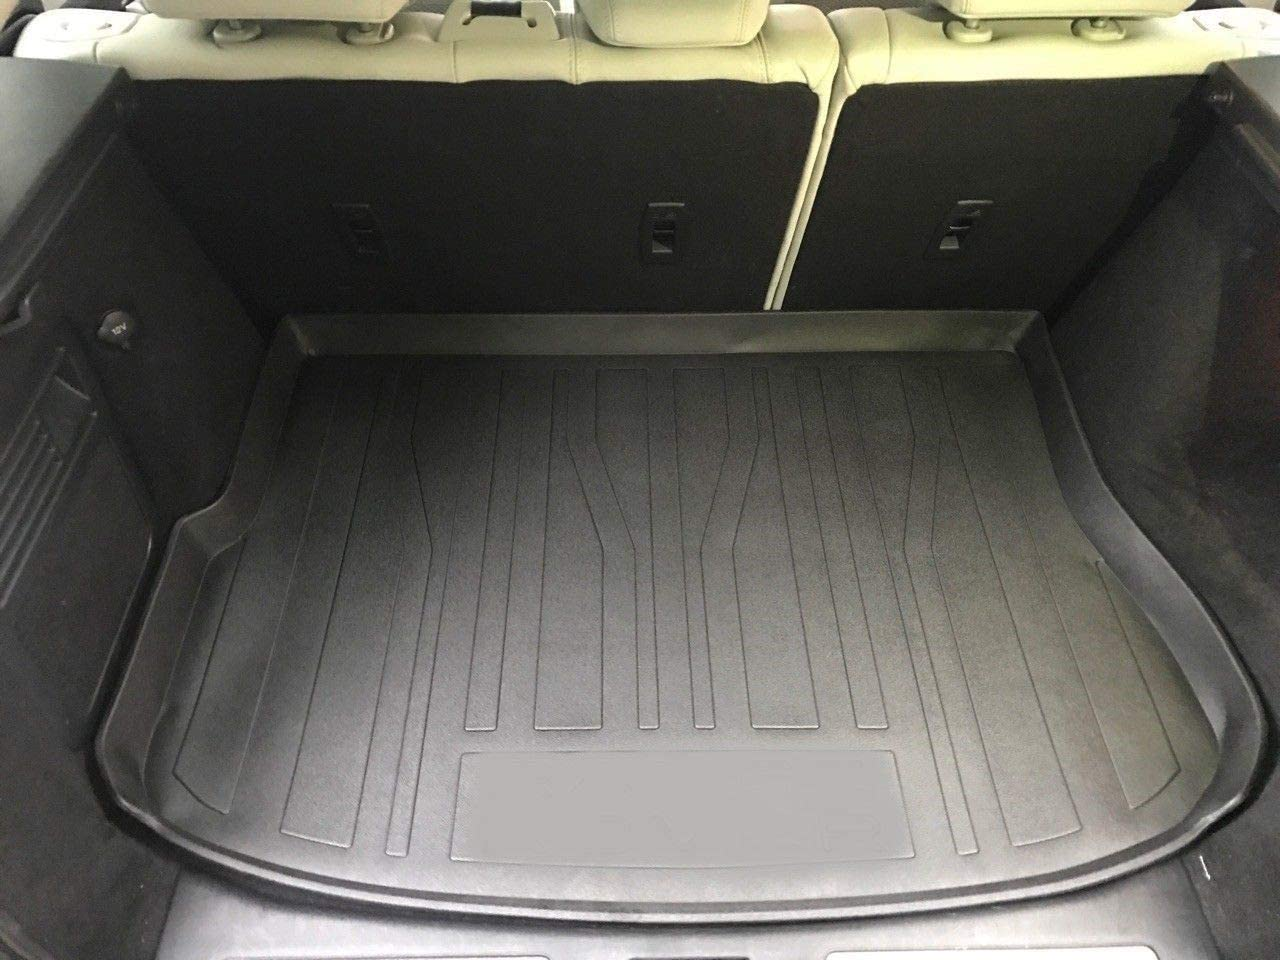 Rear Trunk Liner Tray Mat Pad for LAND ROVER RANGE ROVER EVOQUE 2012 2013 2014 2015 2016 2017 2018 2019 Floor Cargo Cover Tray Protection Dirt Mud Snow All Weather Season Waterproof 3d Laser Measured